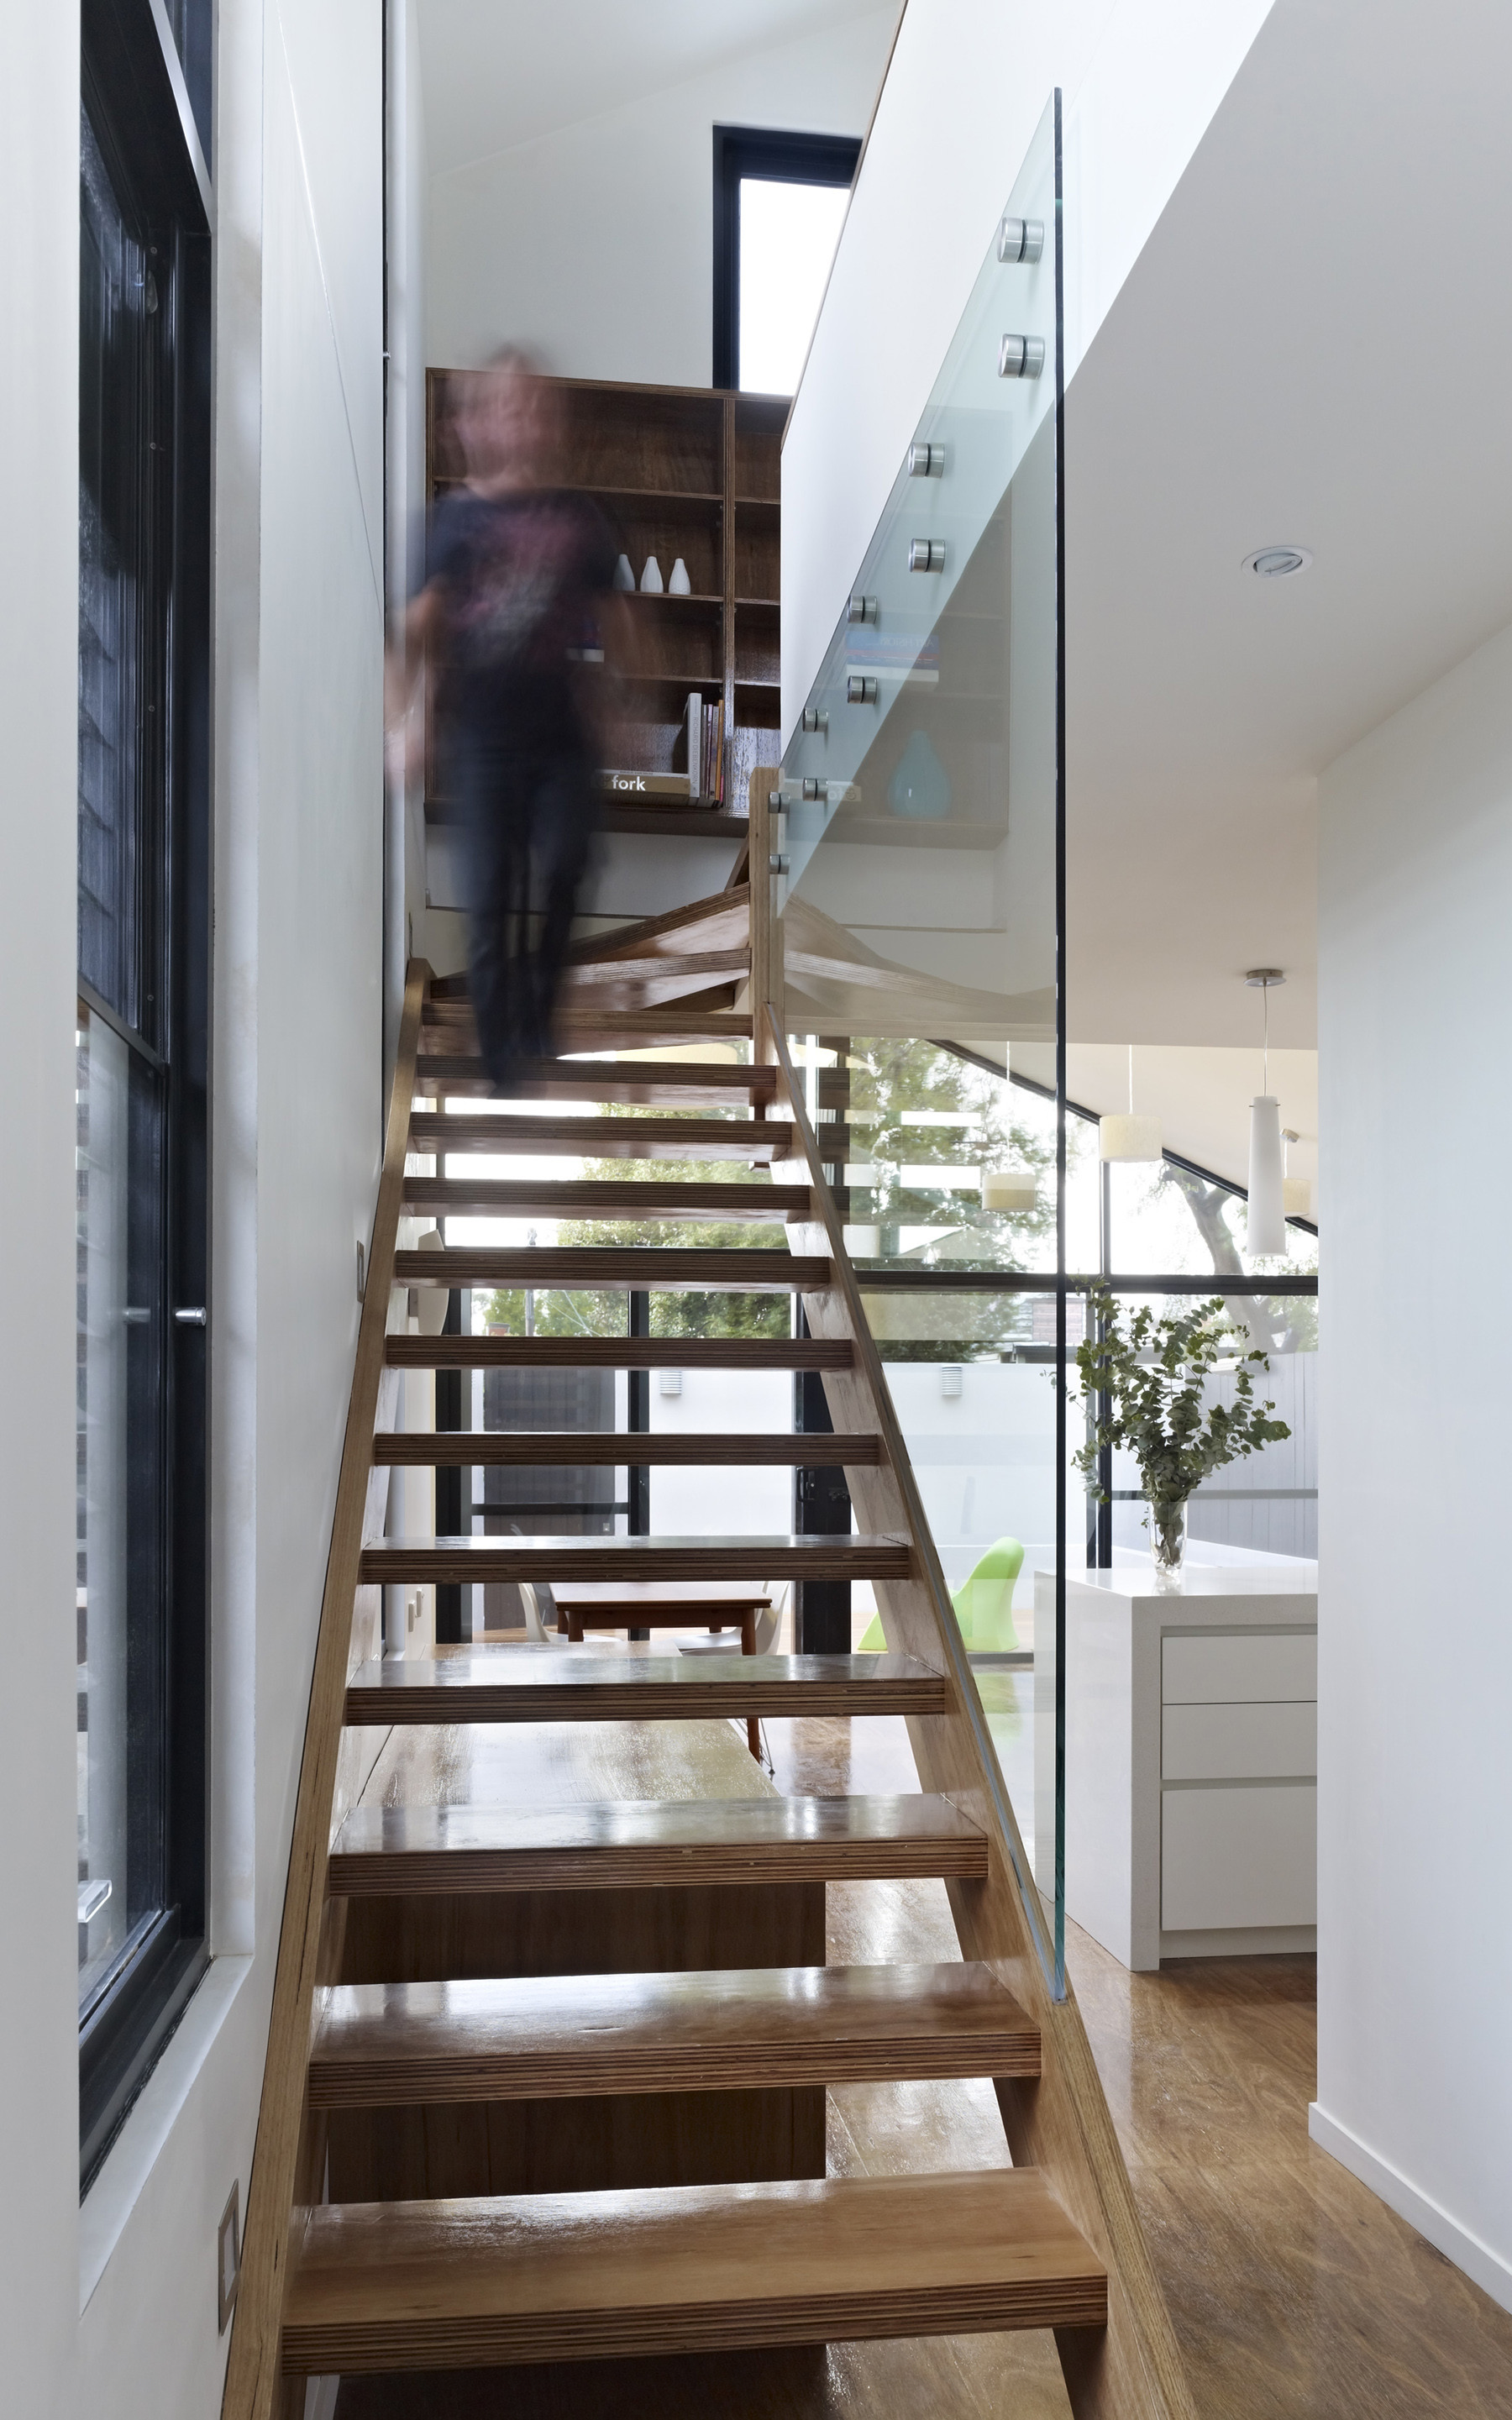 Galería de Vivienda en Fitzroy North / Nic Owen Architects - 7